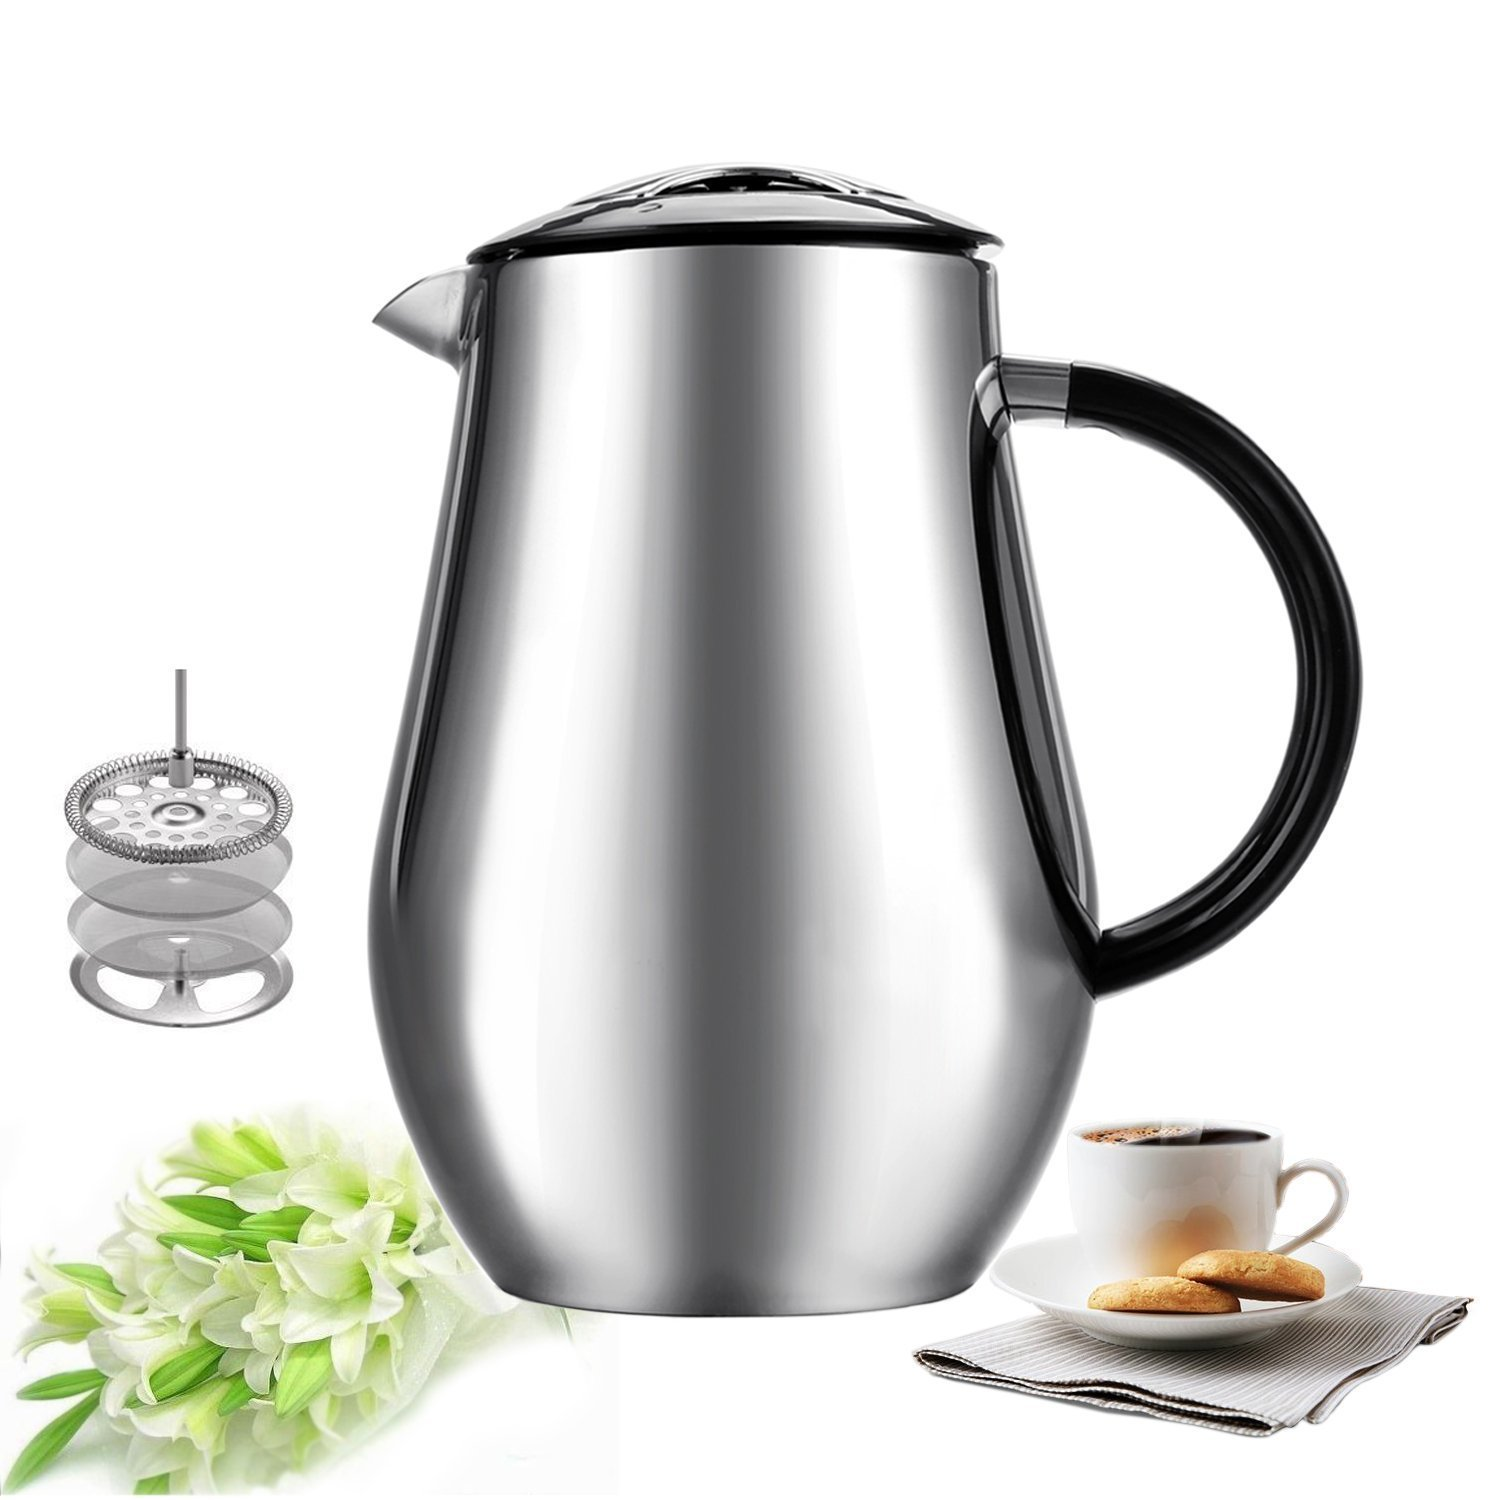 Sailnovo 8-Cup,1000ml/34oz Coffee Press Cafetiere Stainless Steel Double-Wall Vacuum Insulated Coffee Tea Maker Press Pot Plunger Carafe kettle And French Press No Drip Spout With ABS Handle